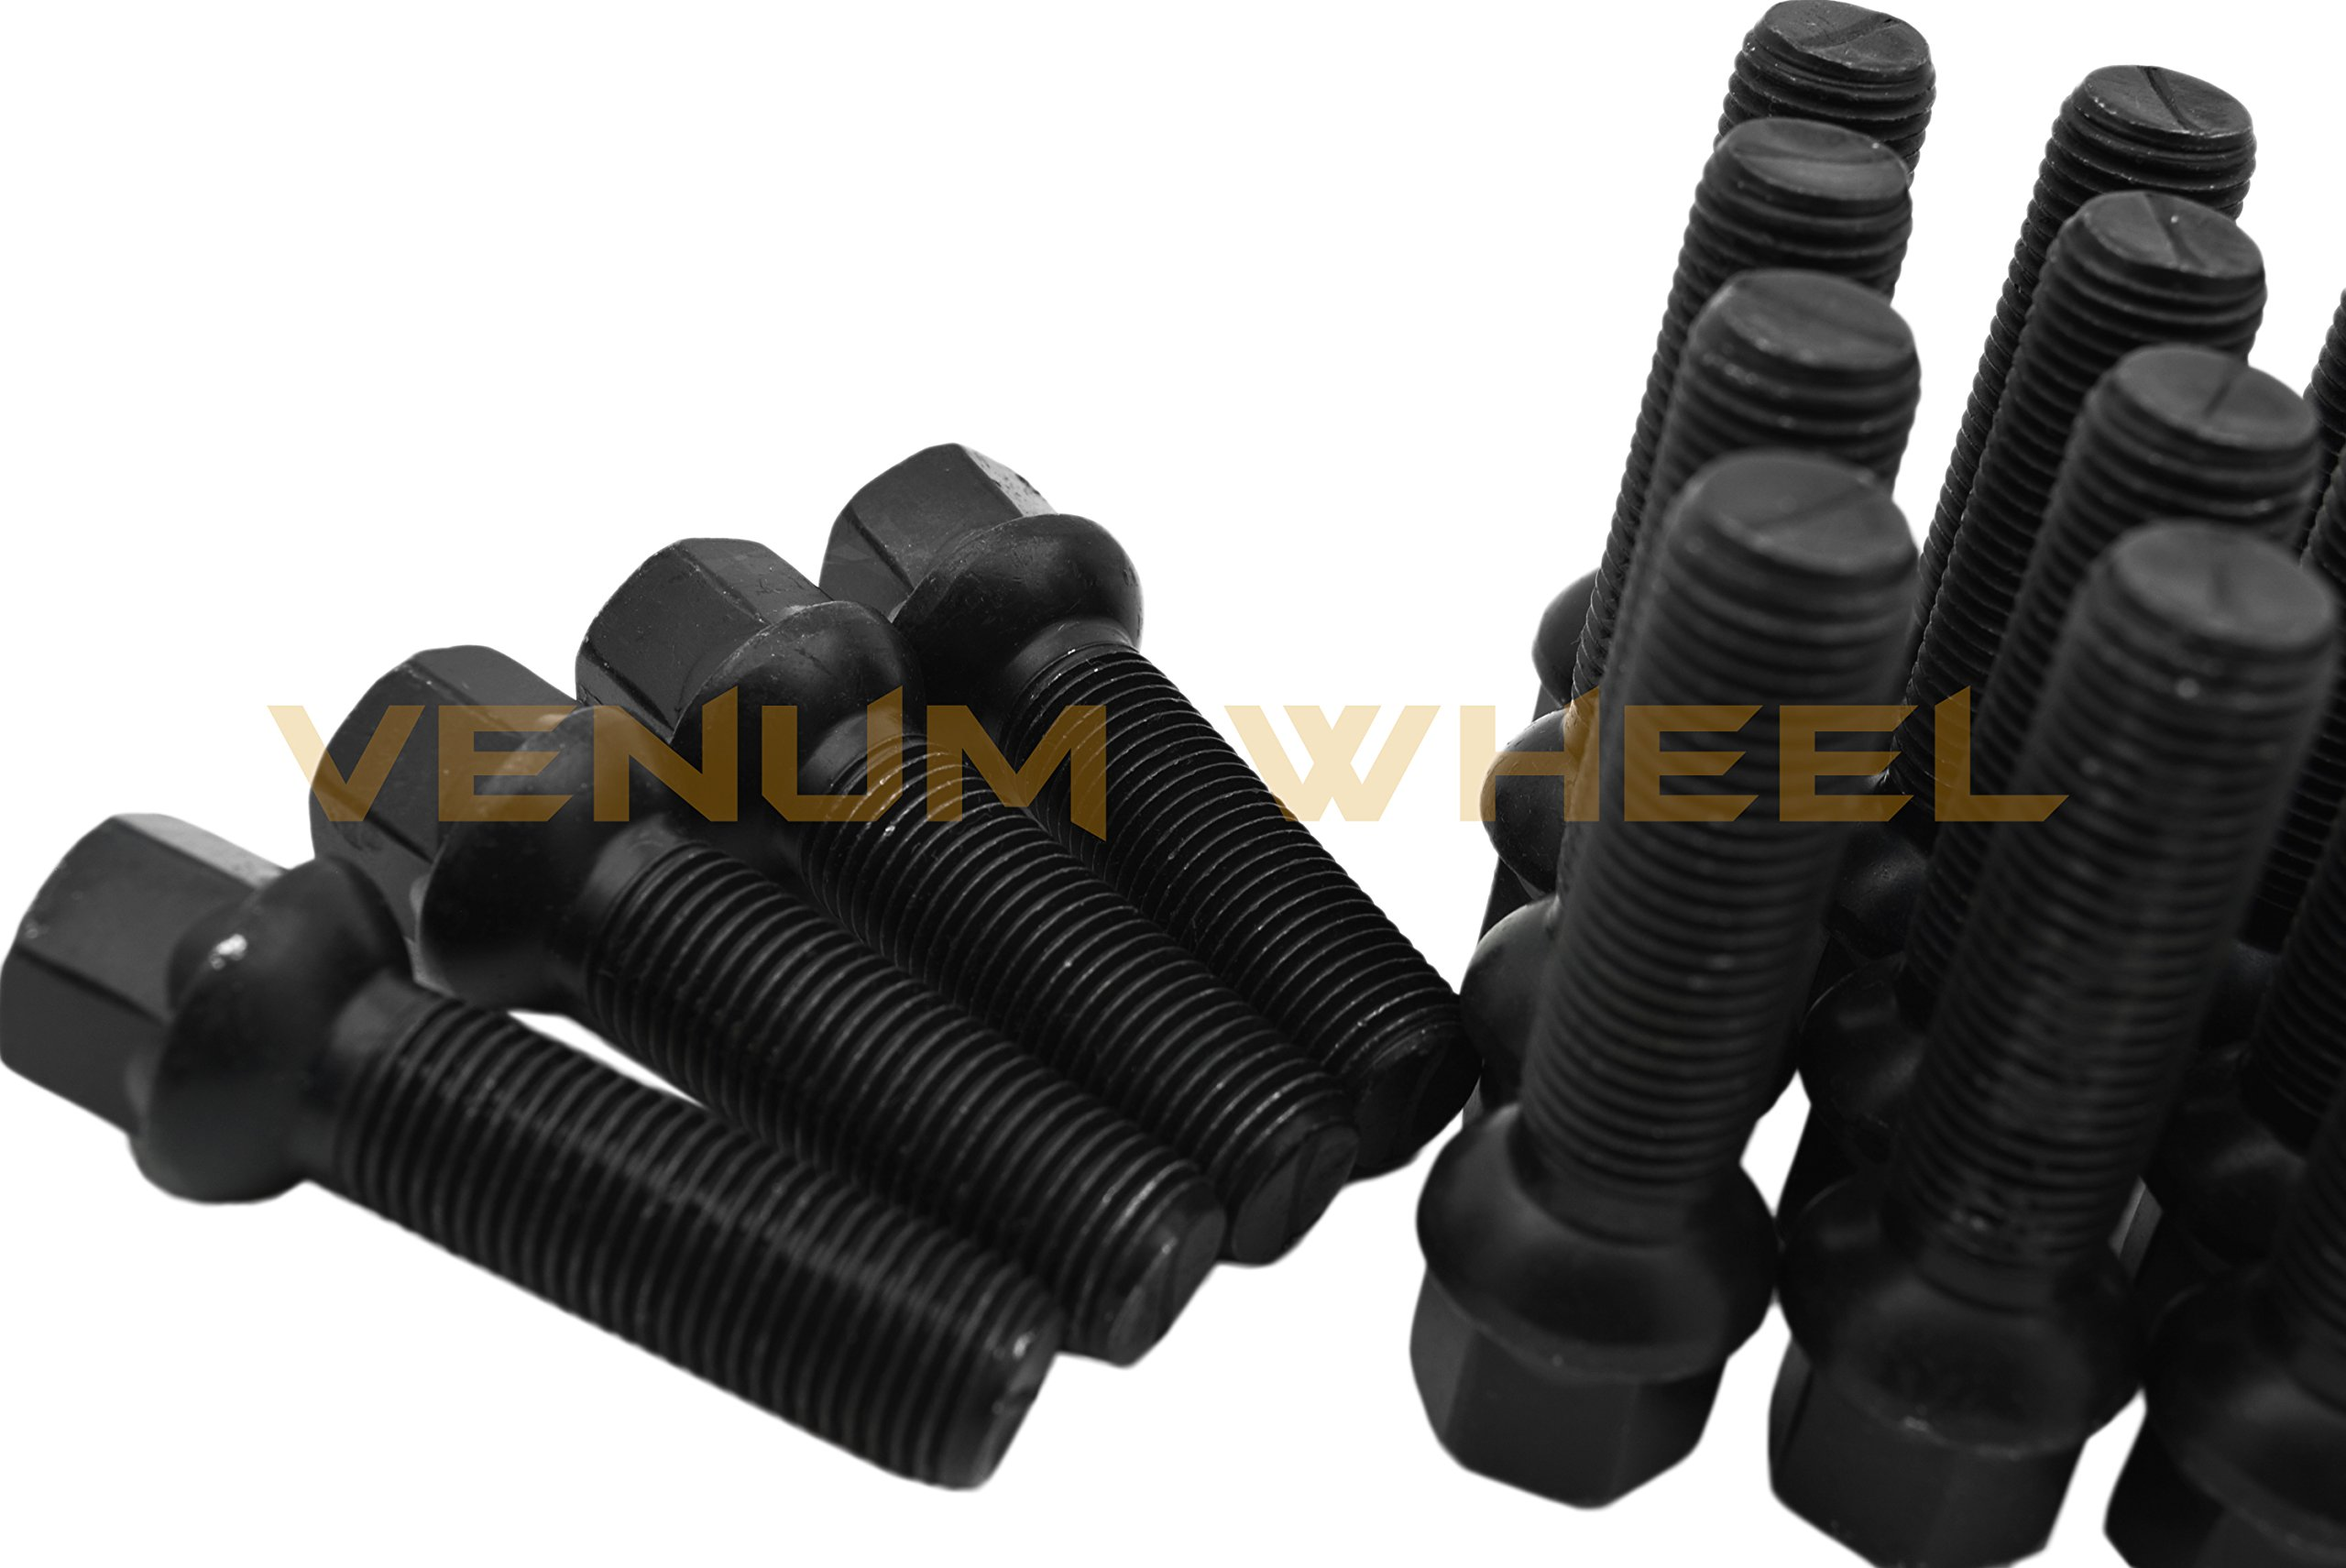 Complete Staggered Kit of 25mm & 30mm Black Hubcentric (57.1) Wheel Spacer Audi Volkswagen 5x100 & 5x112 Bolt Pattern + 20 Pc 14x1.5 Black Ball Seat Lug Bolts … by Venum wheel accessories (Image #7)